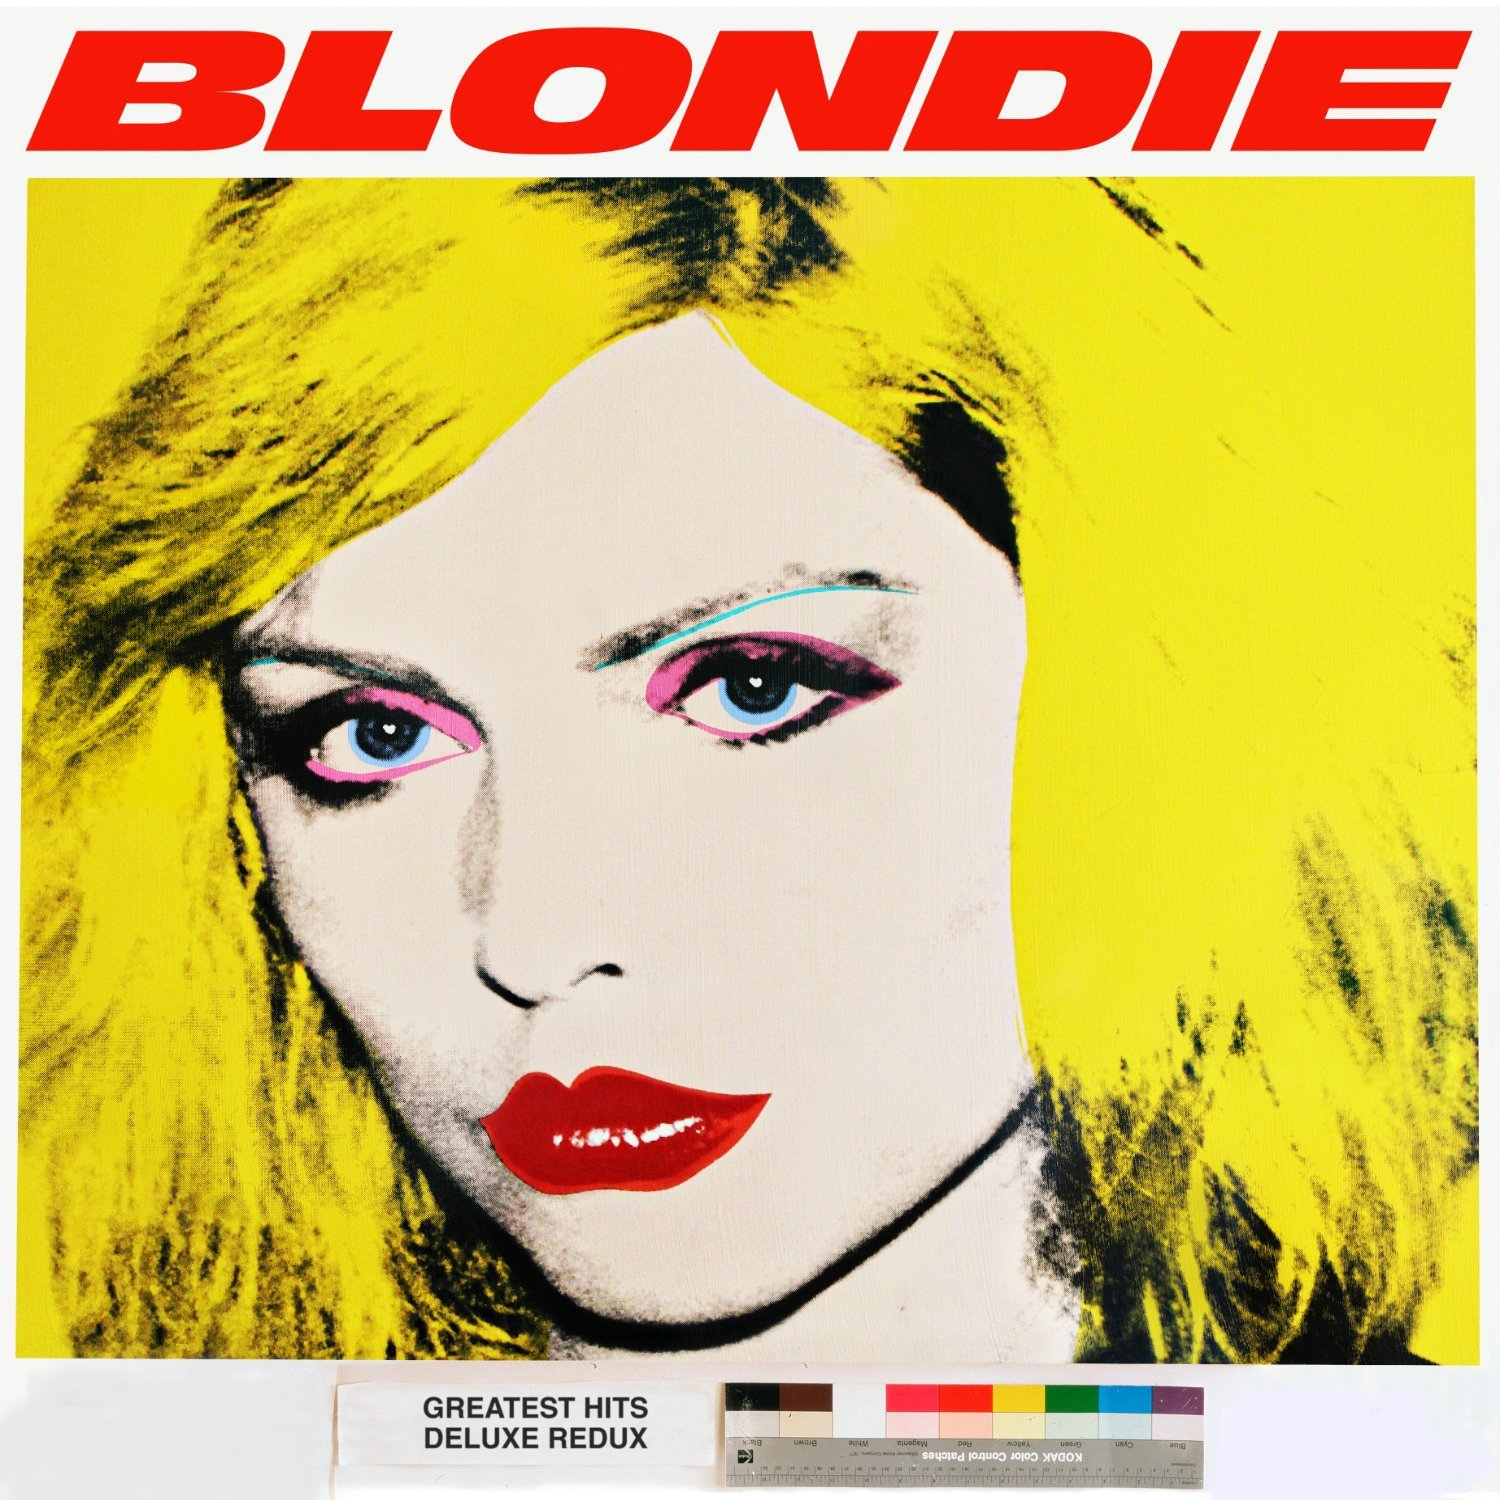 CD : Blondie - Blondie 4(0)-ever: G.h. Dlx / Ghosts Of Download (With DVD, With Booklet, Deluxe Edition, Poster, Slipsleeve Packaging)